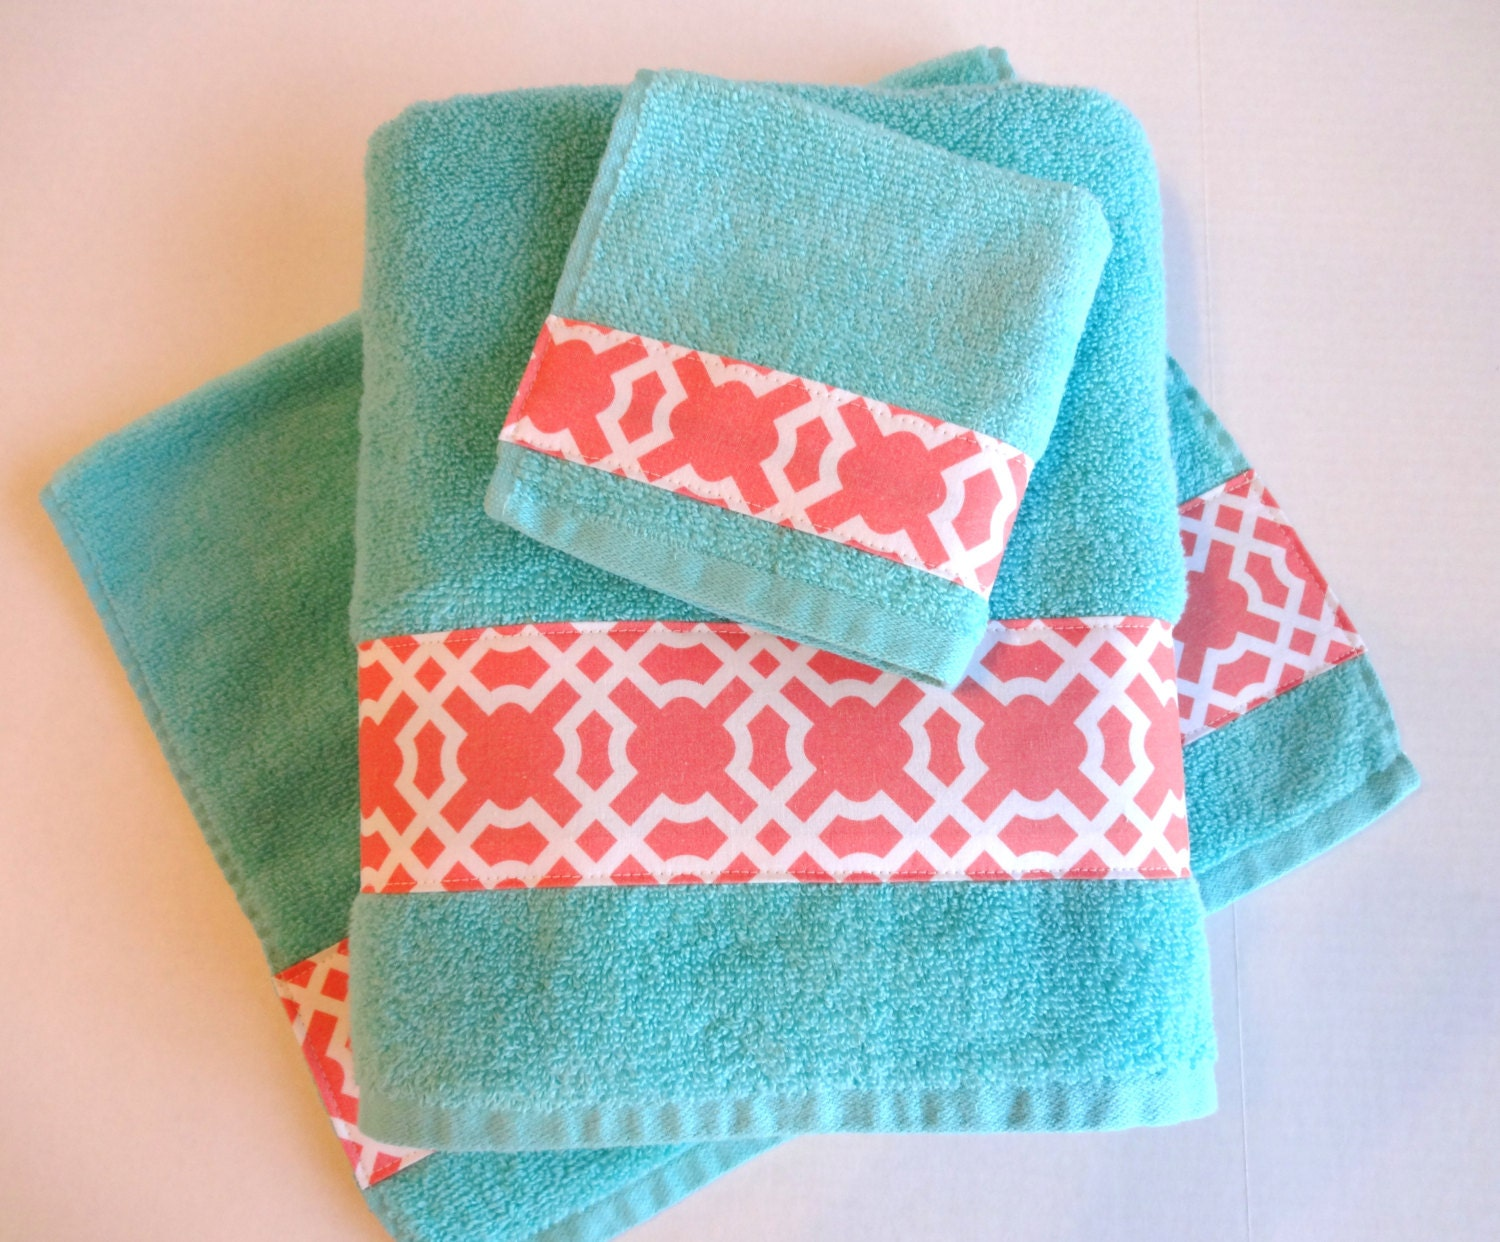 Aqua And Coral Bath Towels Aqua Towels Aqua And Coral Bath Towel